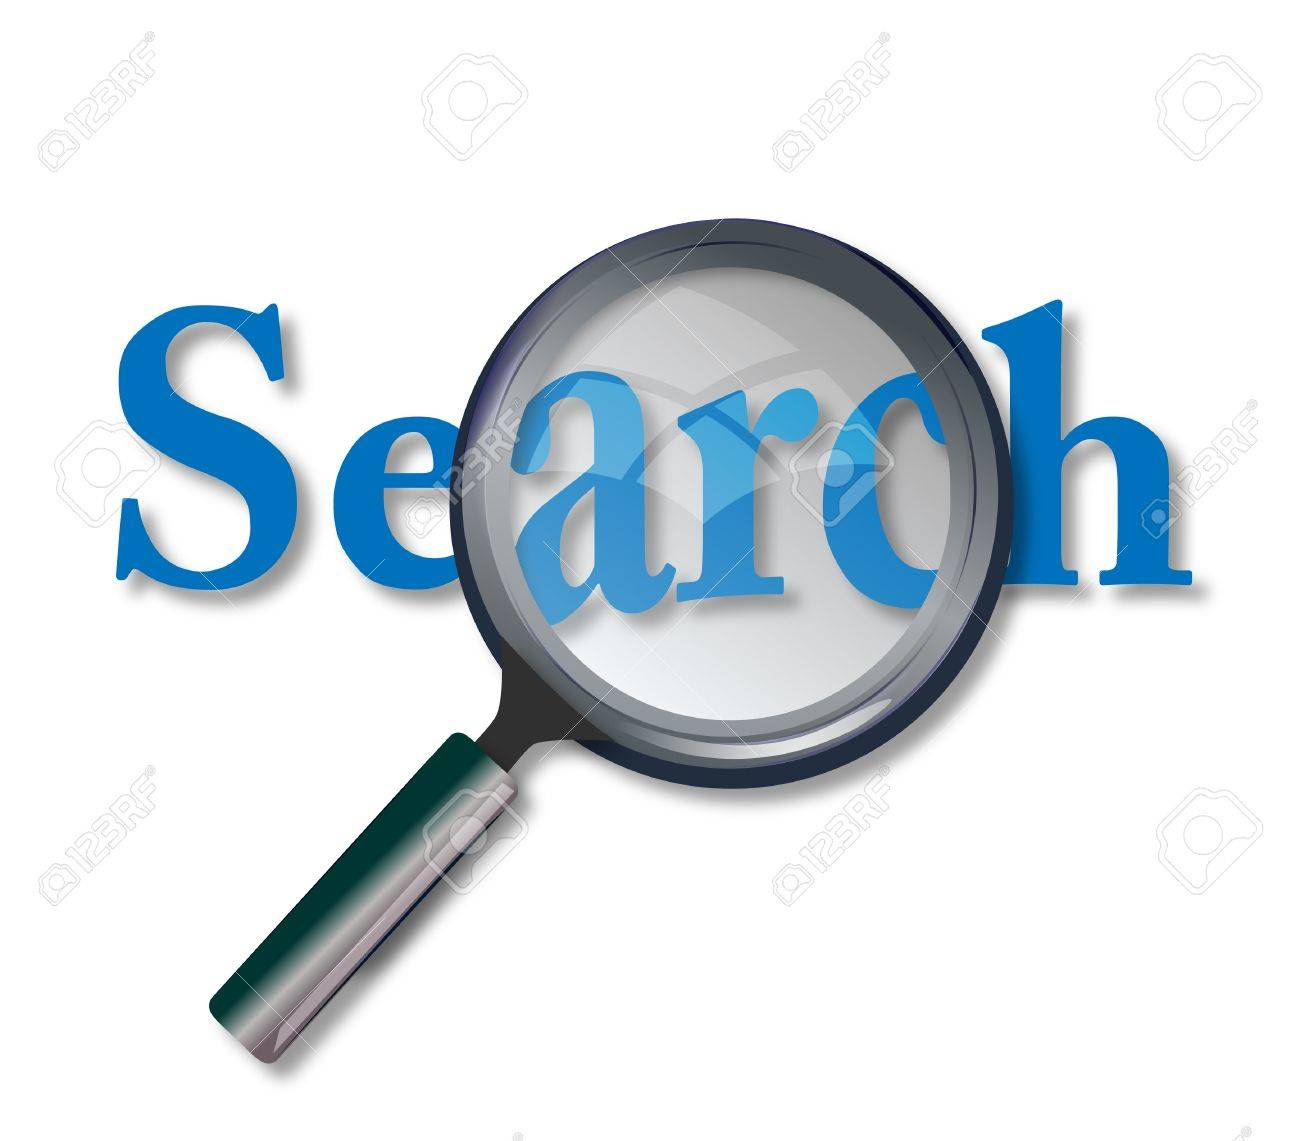 Concept of web site search with magnifying glass Stock Photo - 9181943